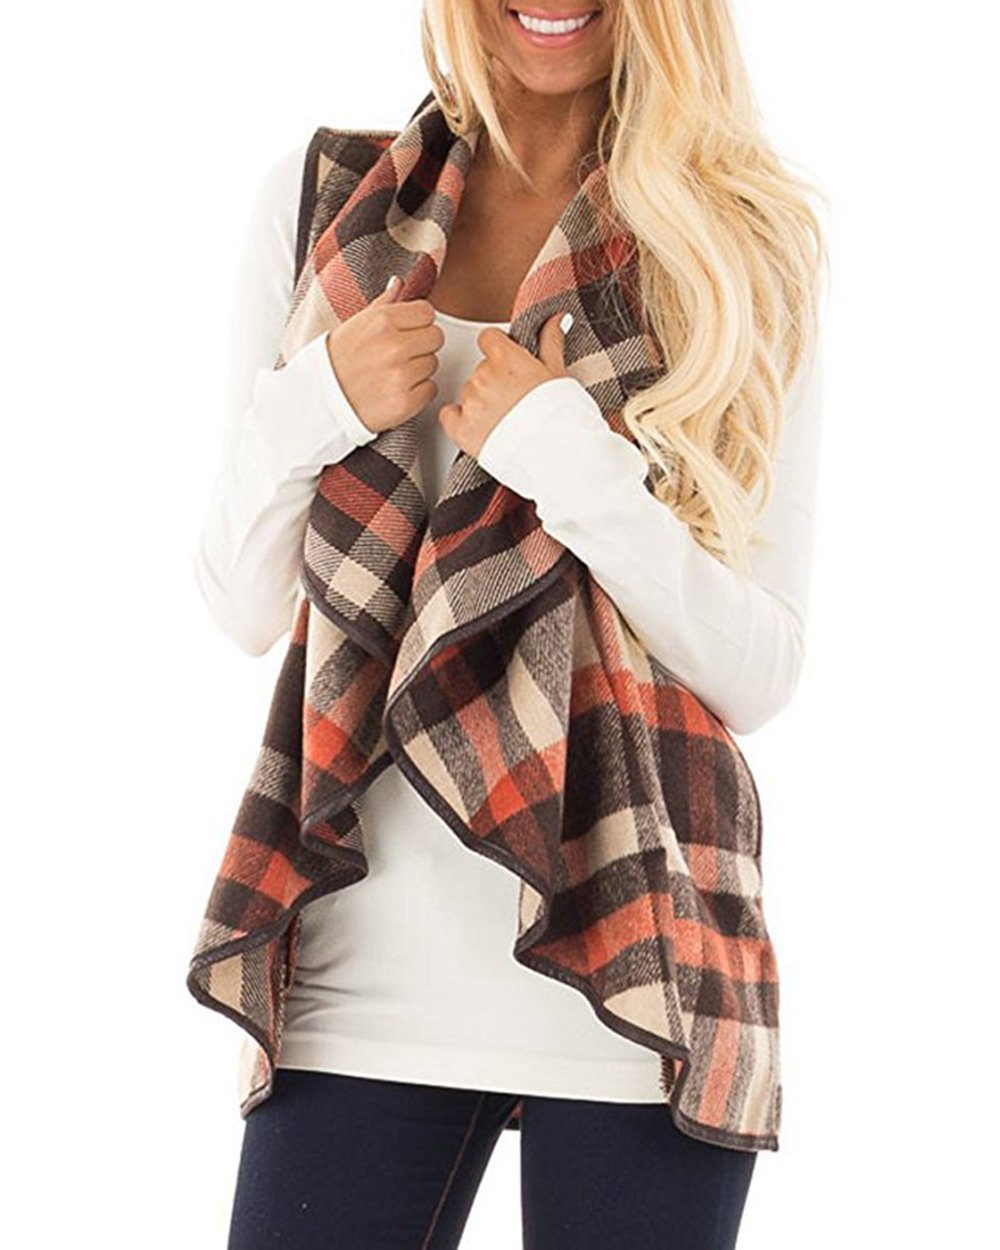 Lovelyduo Women's Lapel Open Front Sleeveless Plaid Vest Cardigan Sweater Coat Khaki S